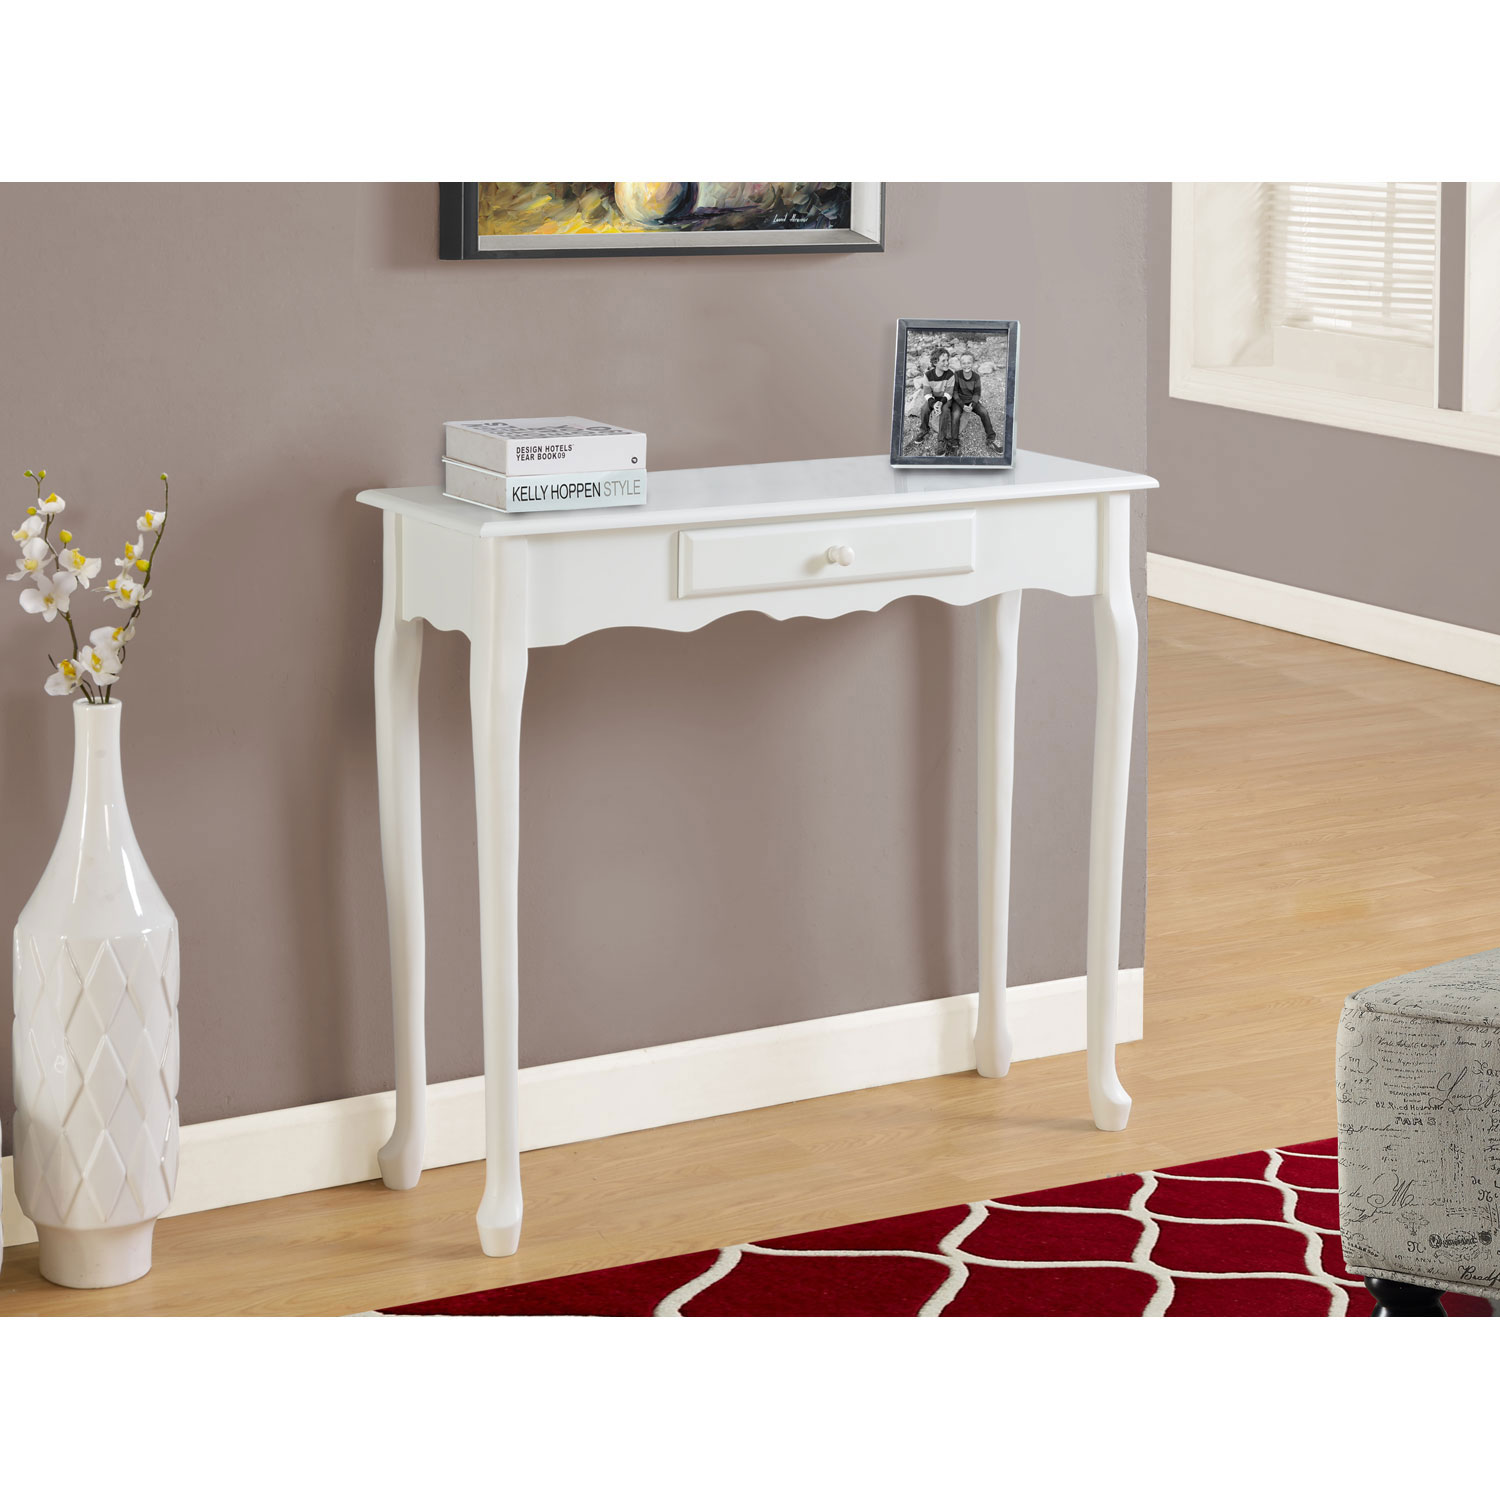 hawthorne ave antique white inch accent table bellacor summer outdoor clearance target threshold lamp teak rustic tablecloth console lamps small metal legs bar height patio glass